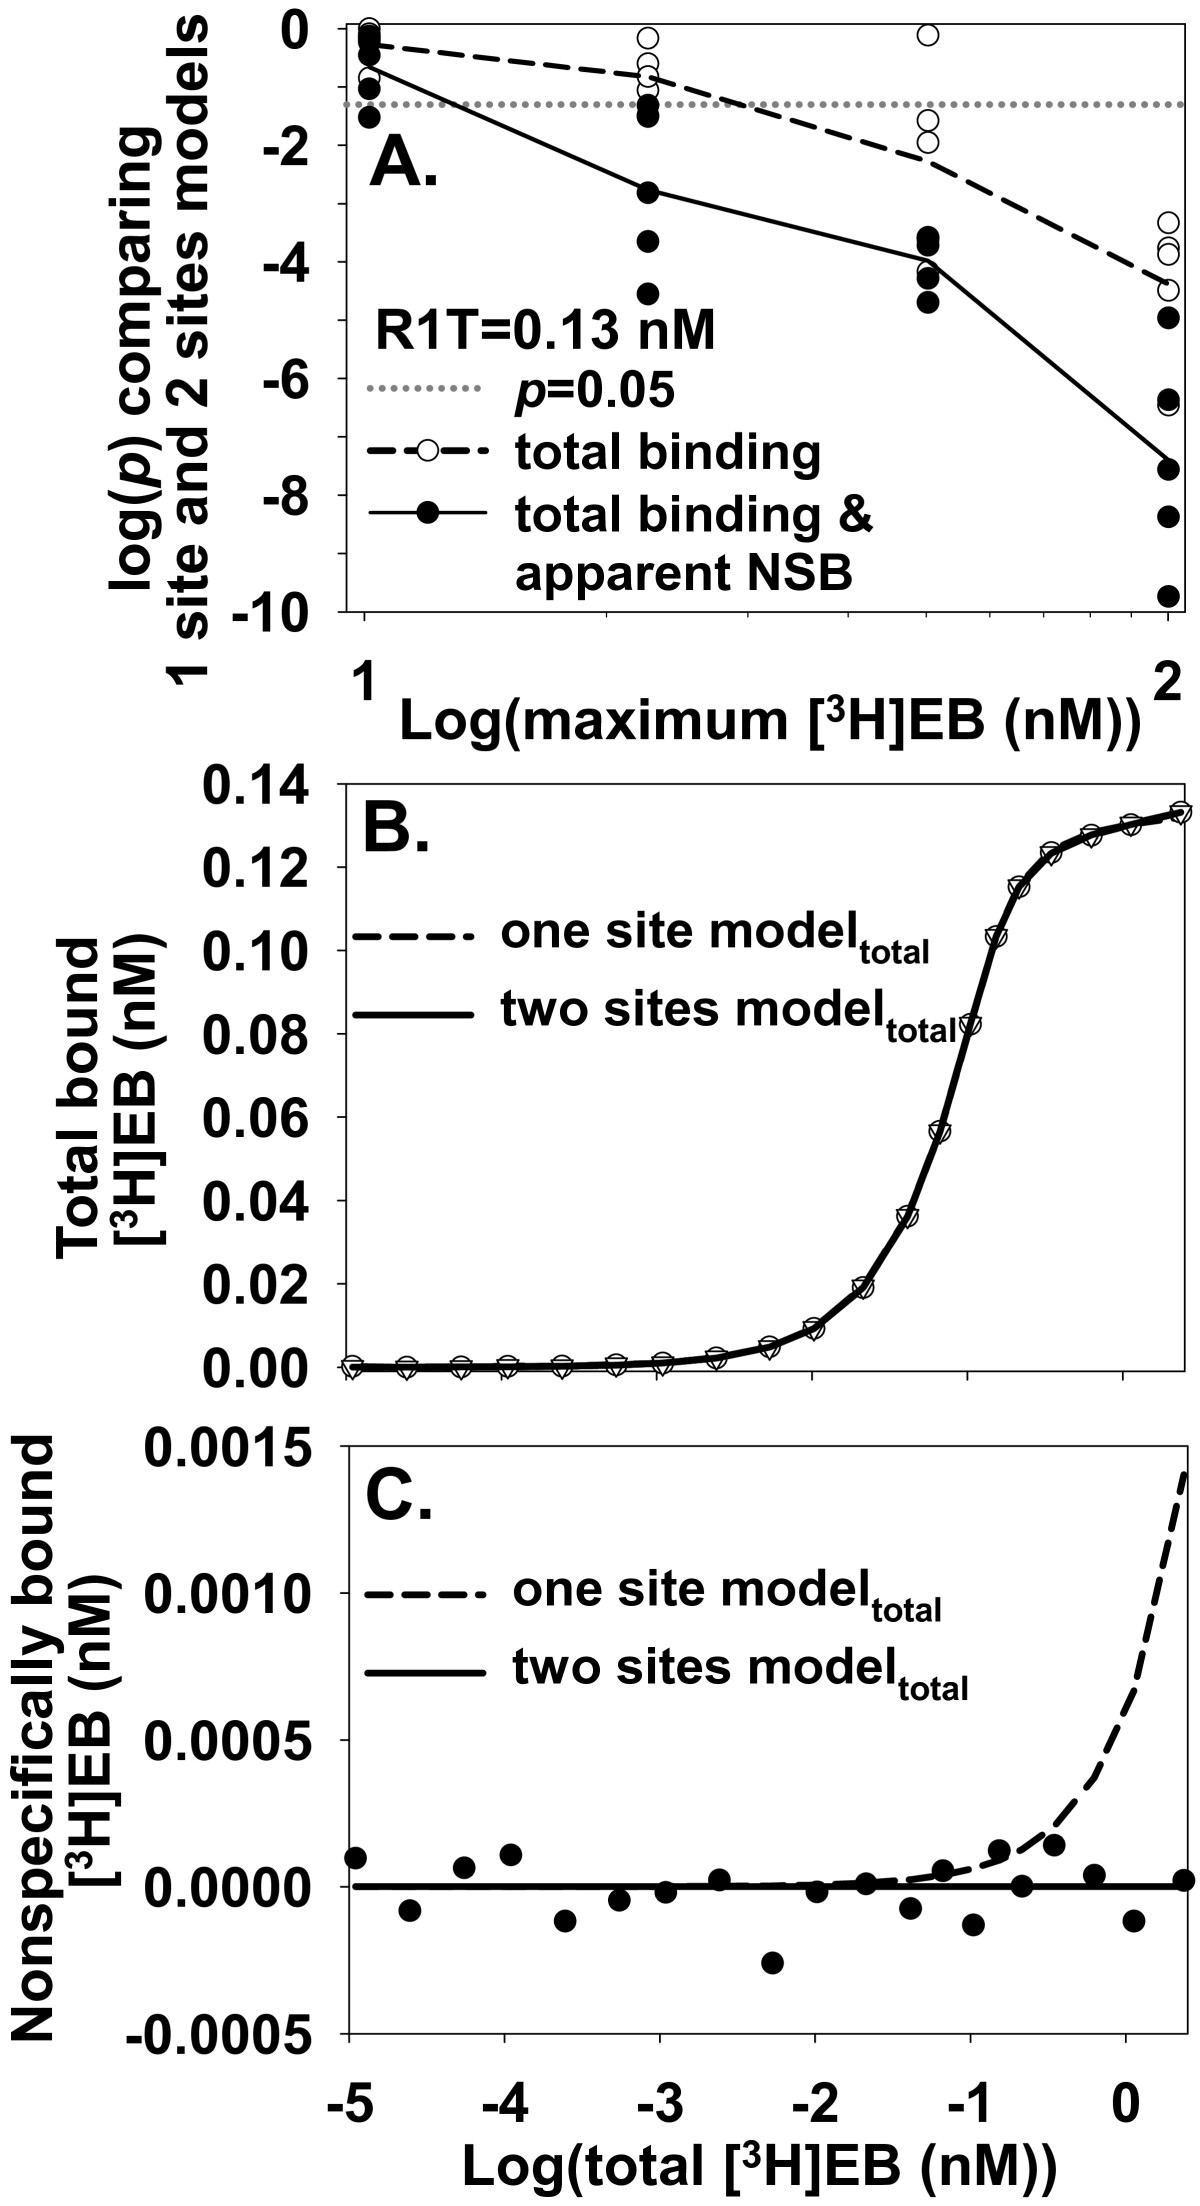 https://static-content.springer.com/image/art%3A10.1186%2F2046-1682-4-19/MediaObjects/13628_2011_Article_21_Fig5_HTML.jpg